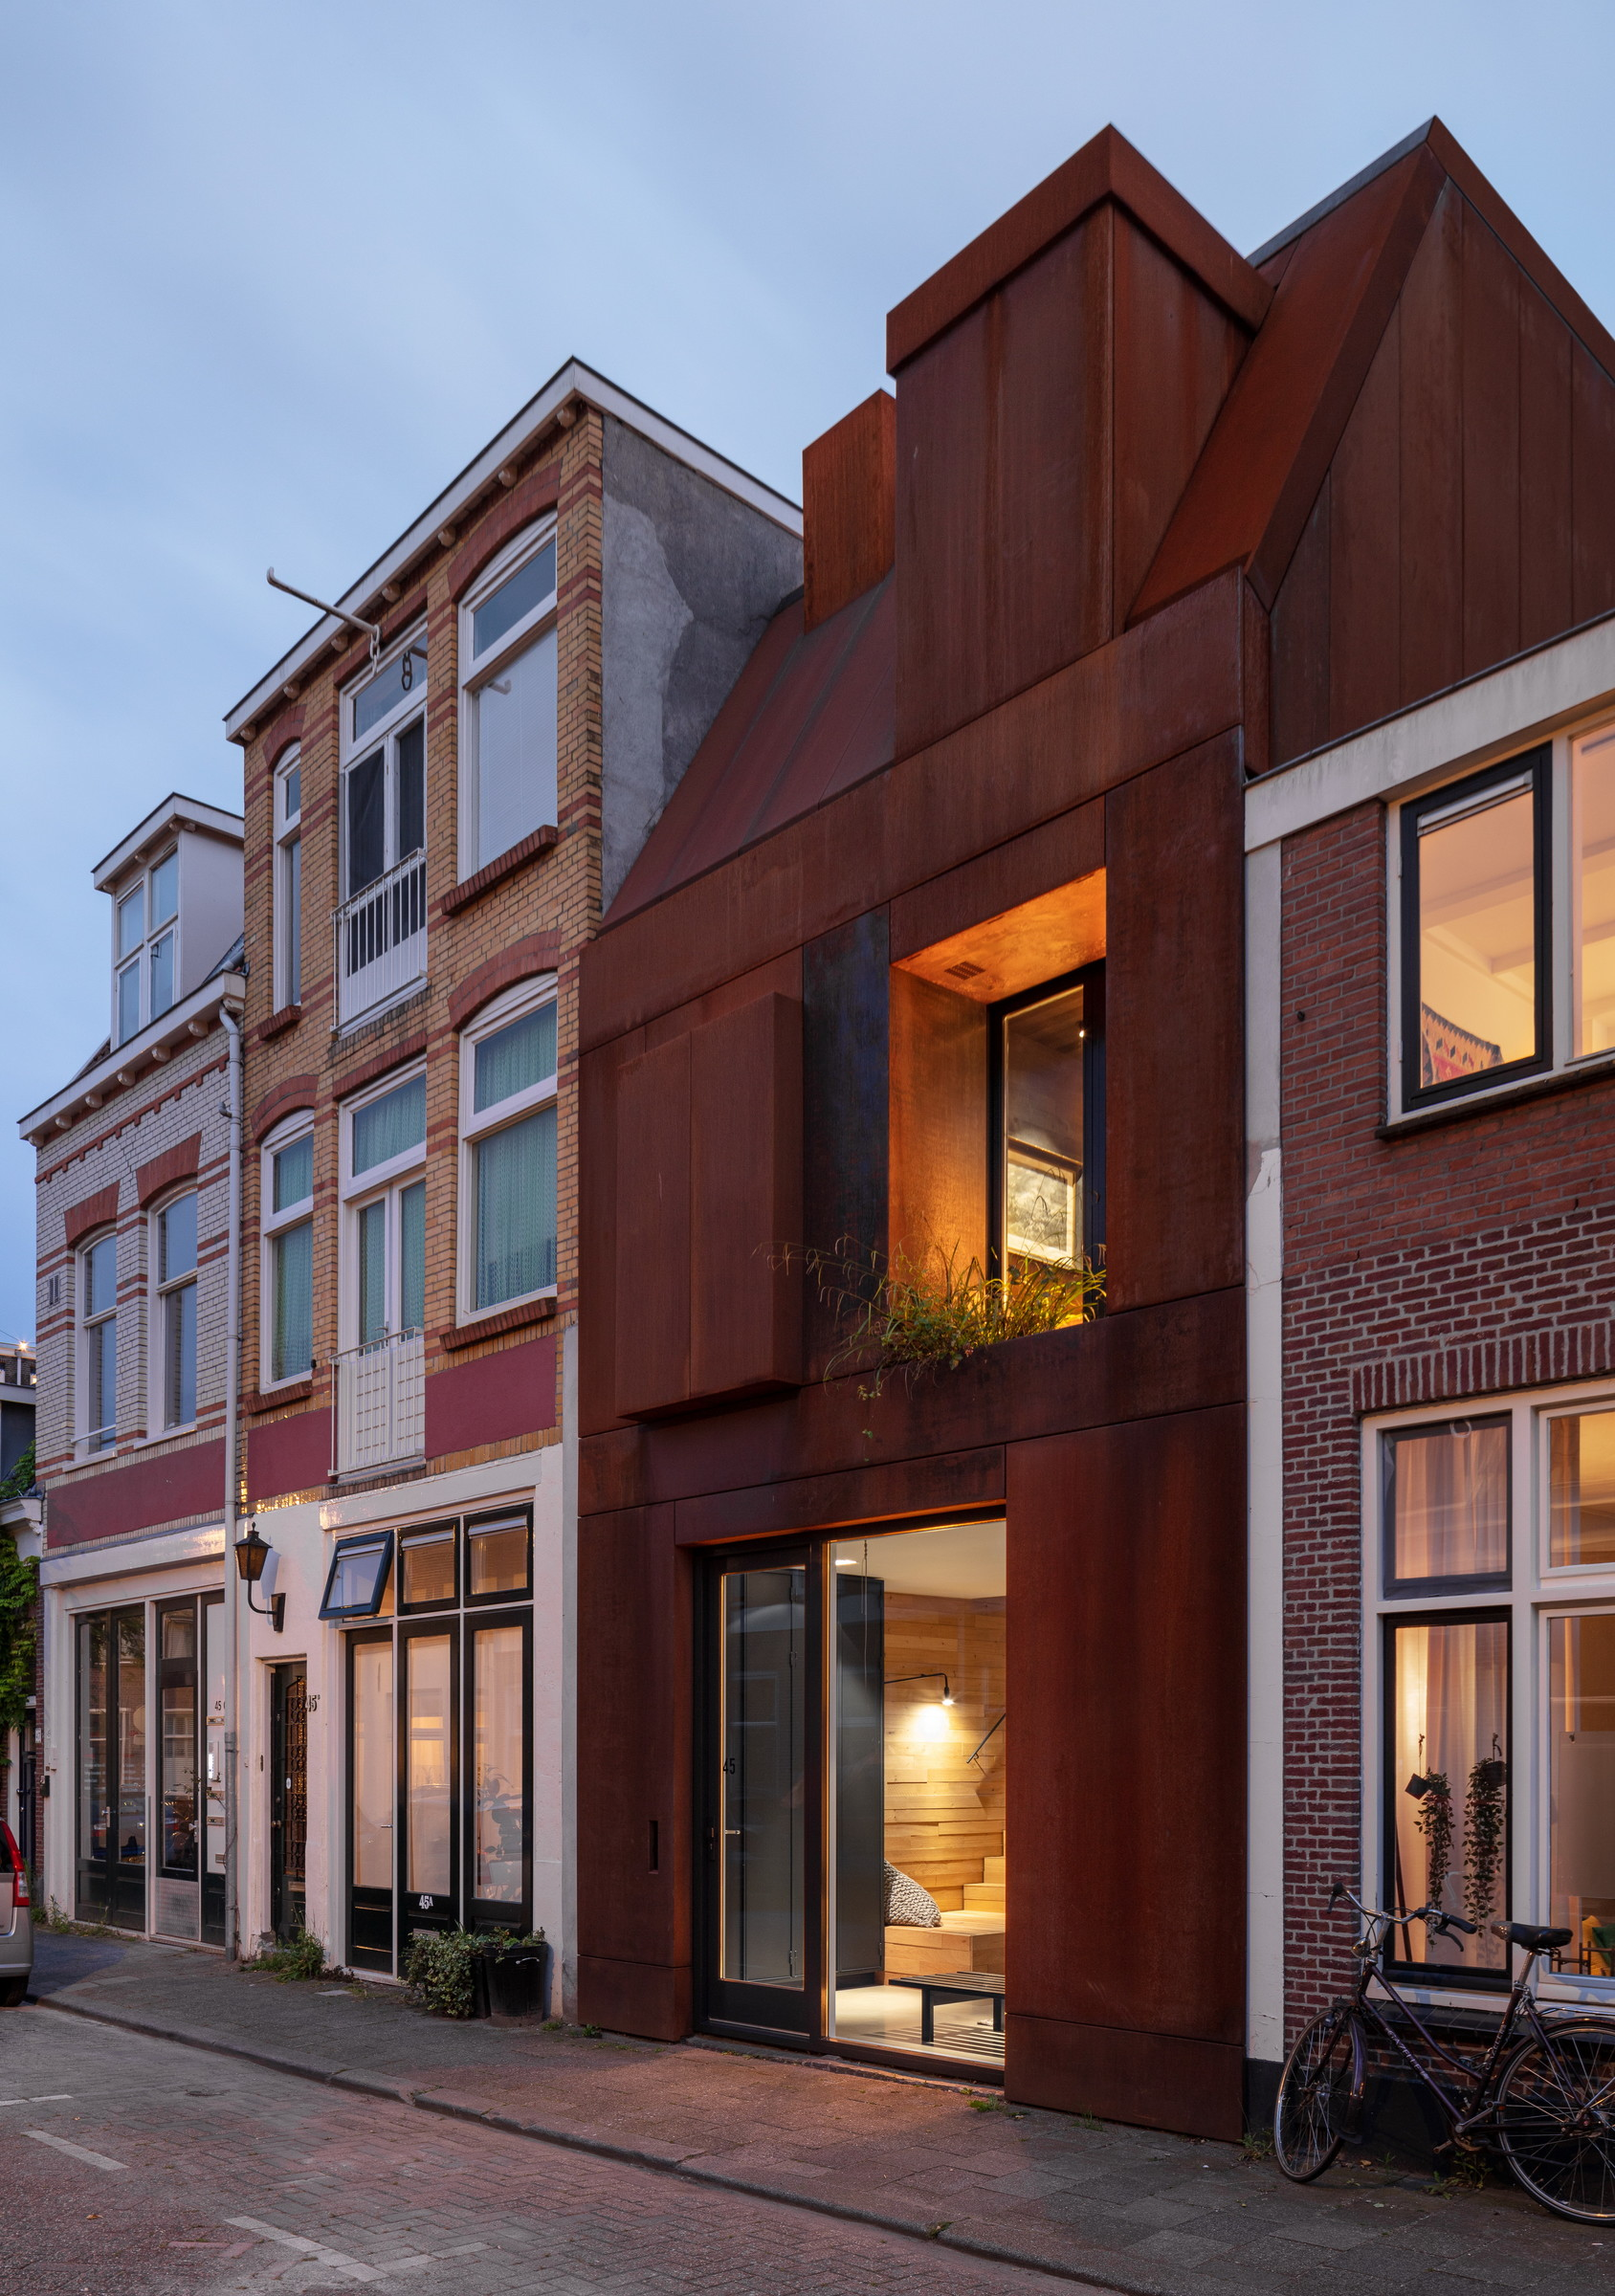 132-Zecc_Architecten-Utrecht-house-steel-craft.JPG